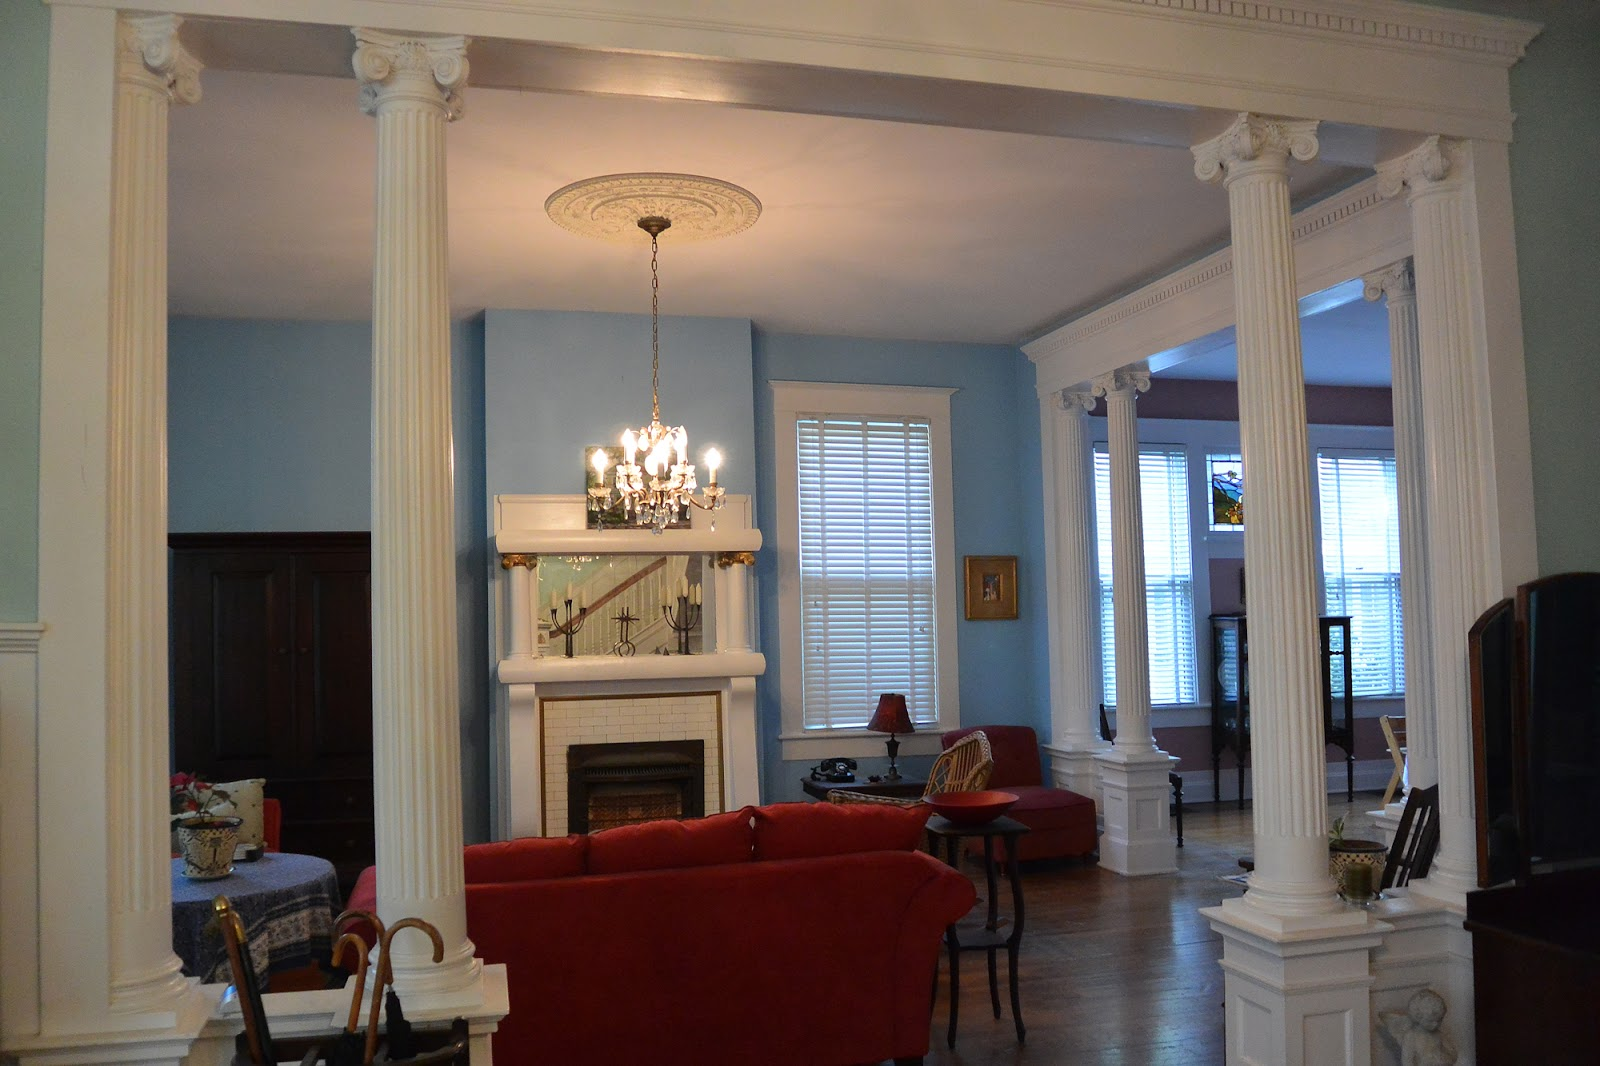 Teegee essays july 2013 for Pictures of columns in living room